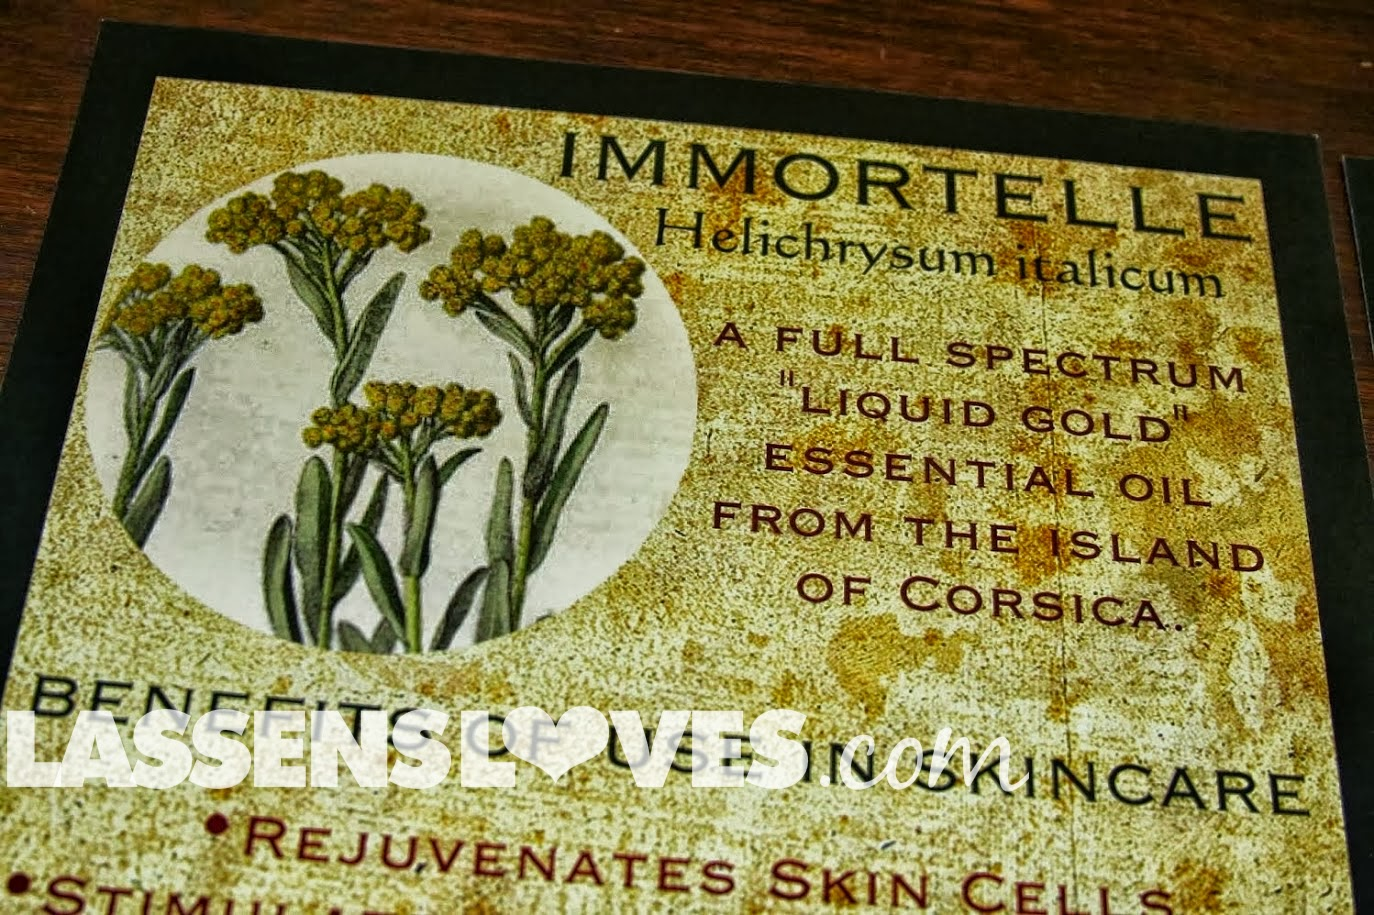 lassensloves.com, Lassen's, Metamour+Immortelle, sensitive+skin, Oil+Corsica, botanicals